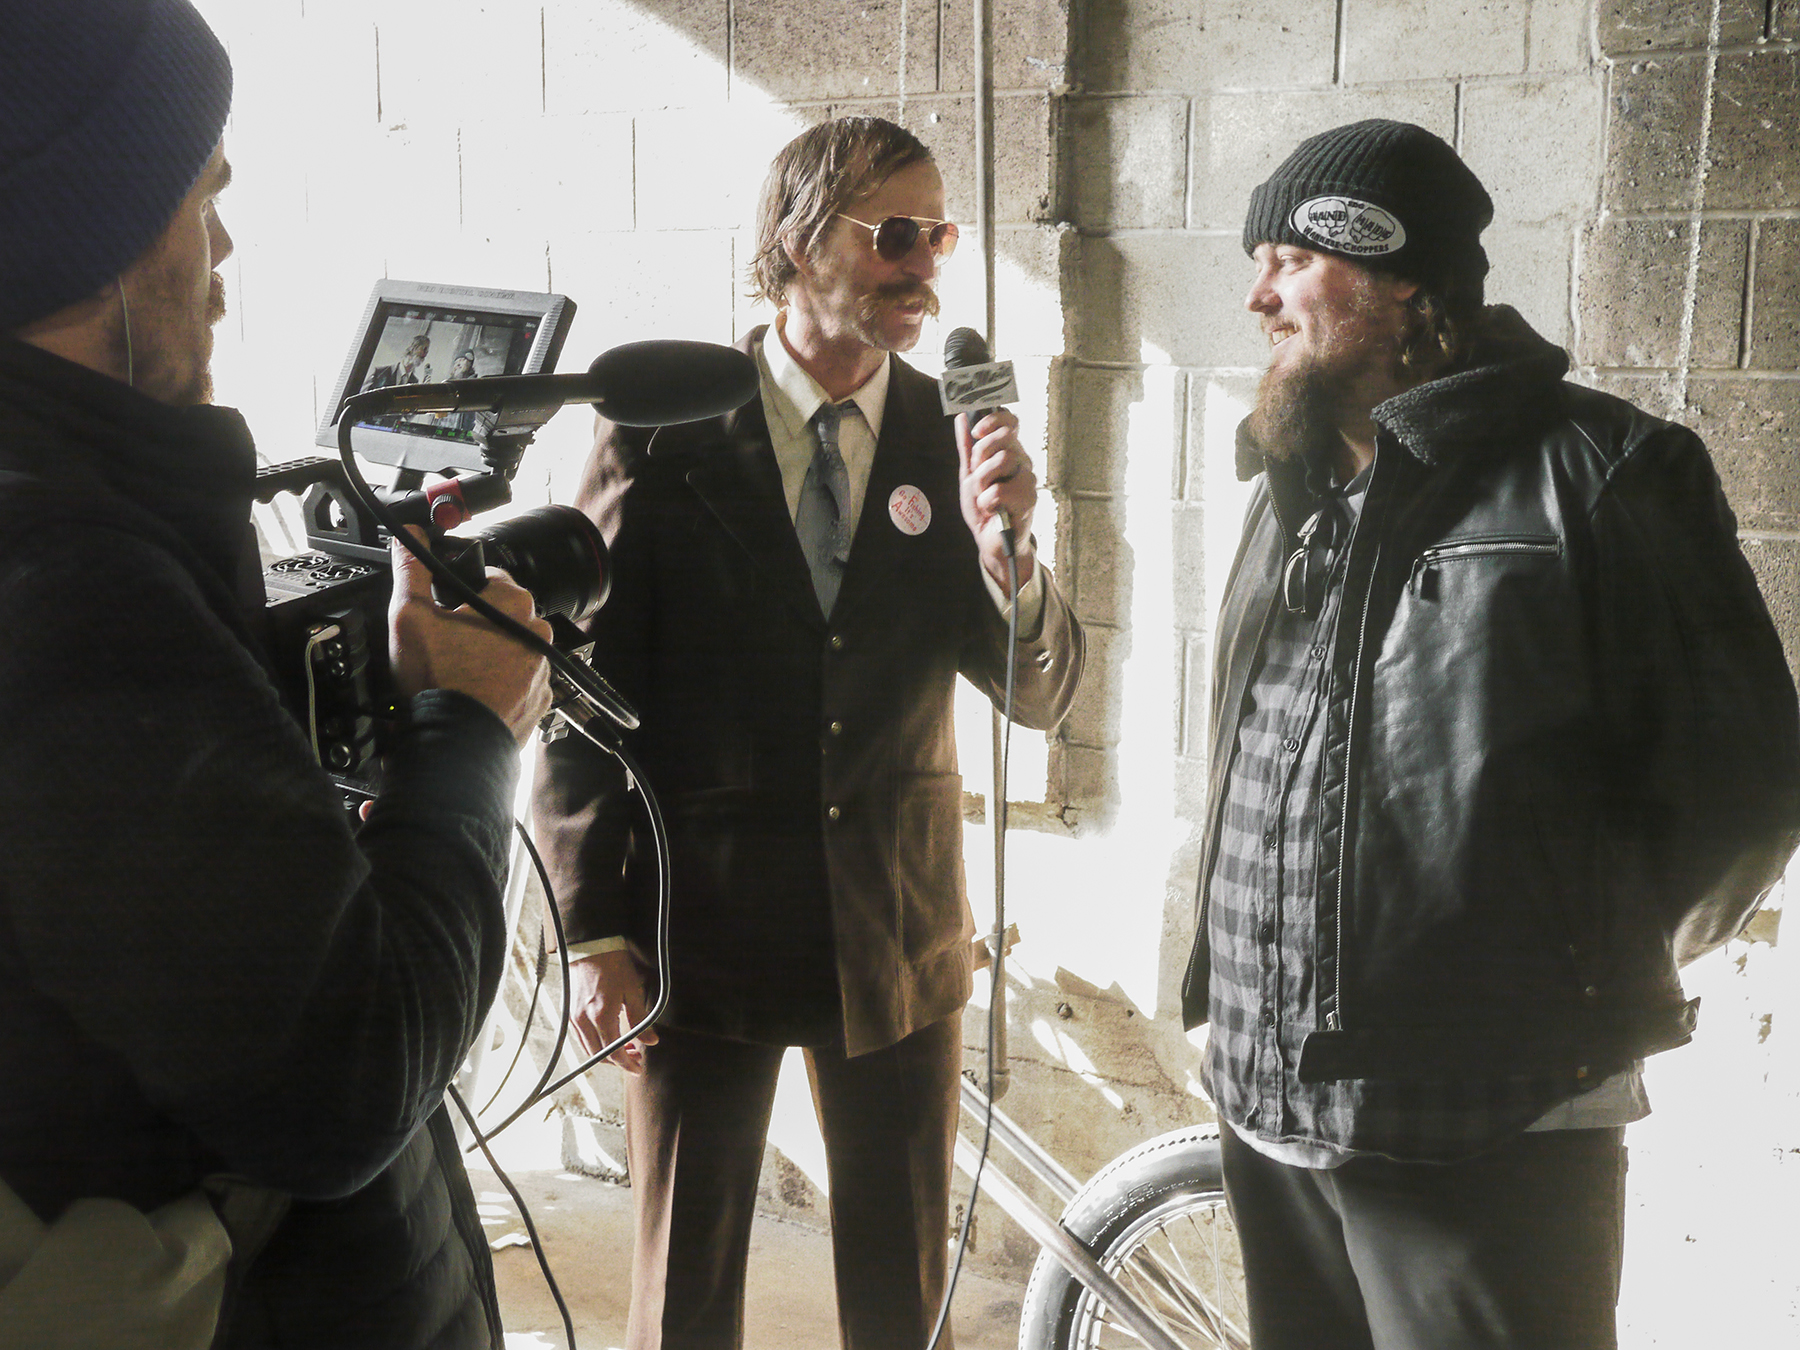 Thor Drake, the man behind One Moto, interviews De Haas for One Moto TV.